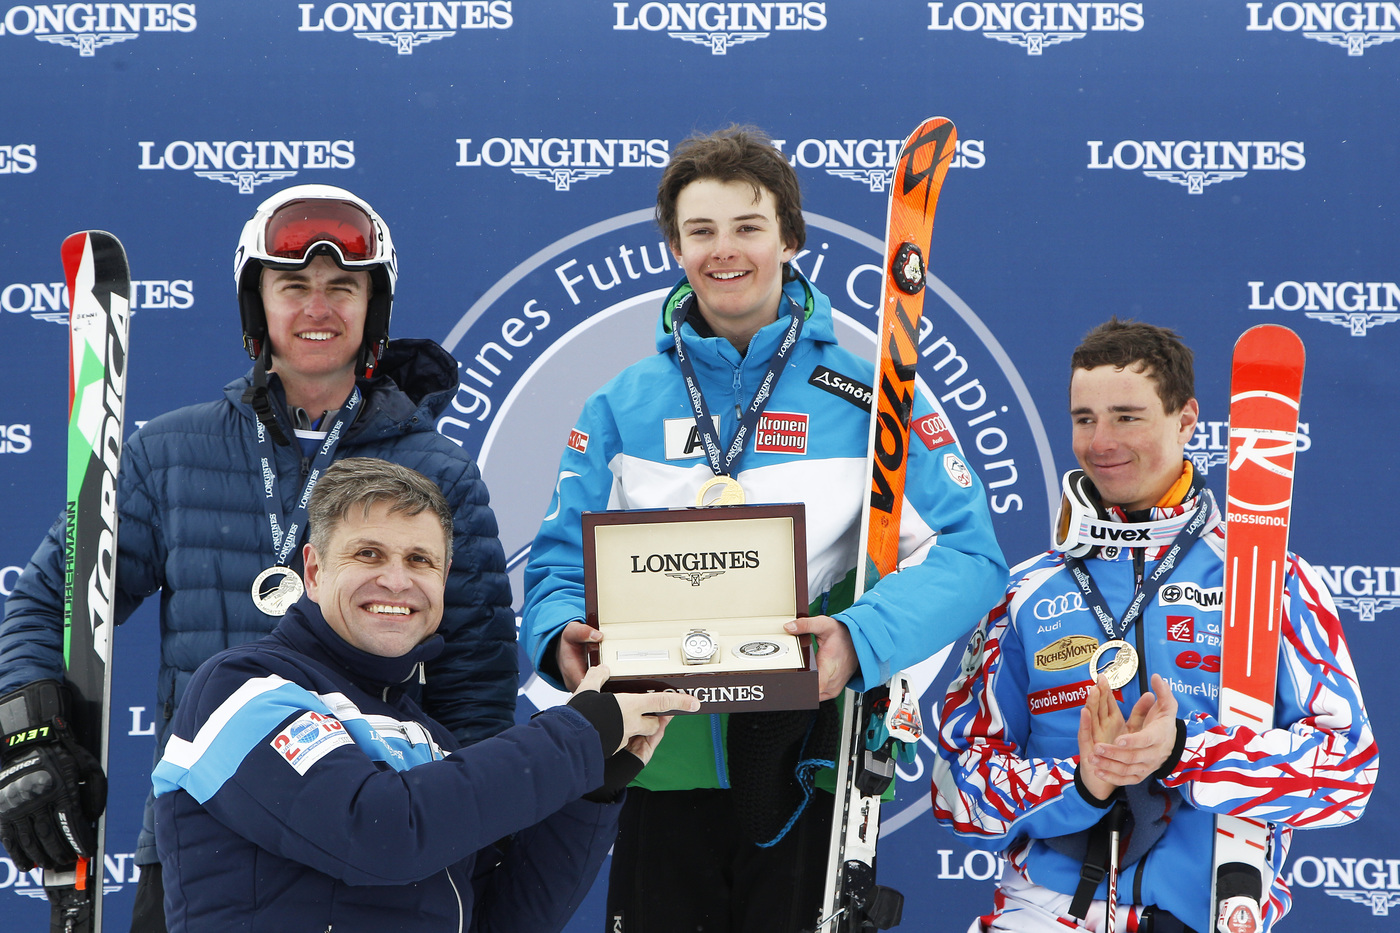 Longines Alpine Skiing Event: A new venue for the third edition of the Longines Future Ski Champions 1